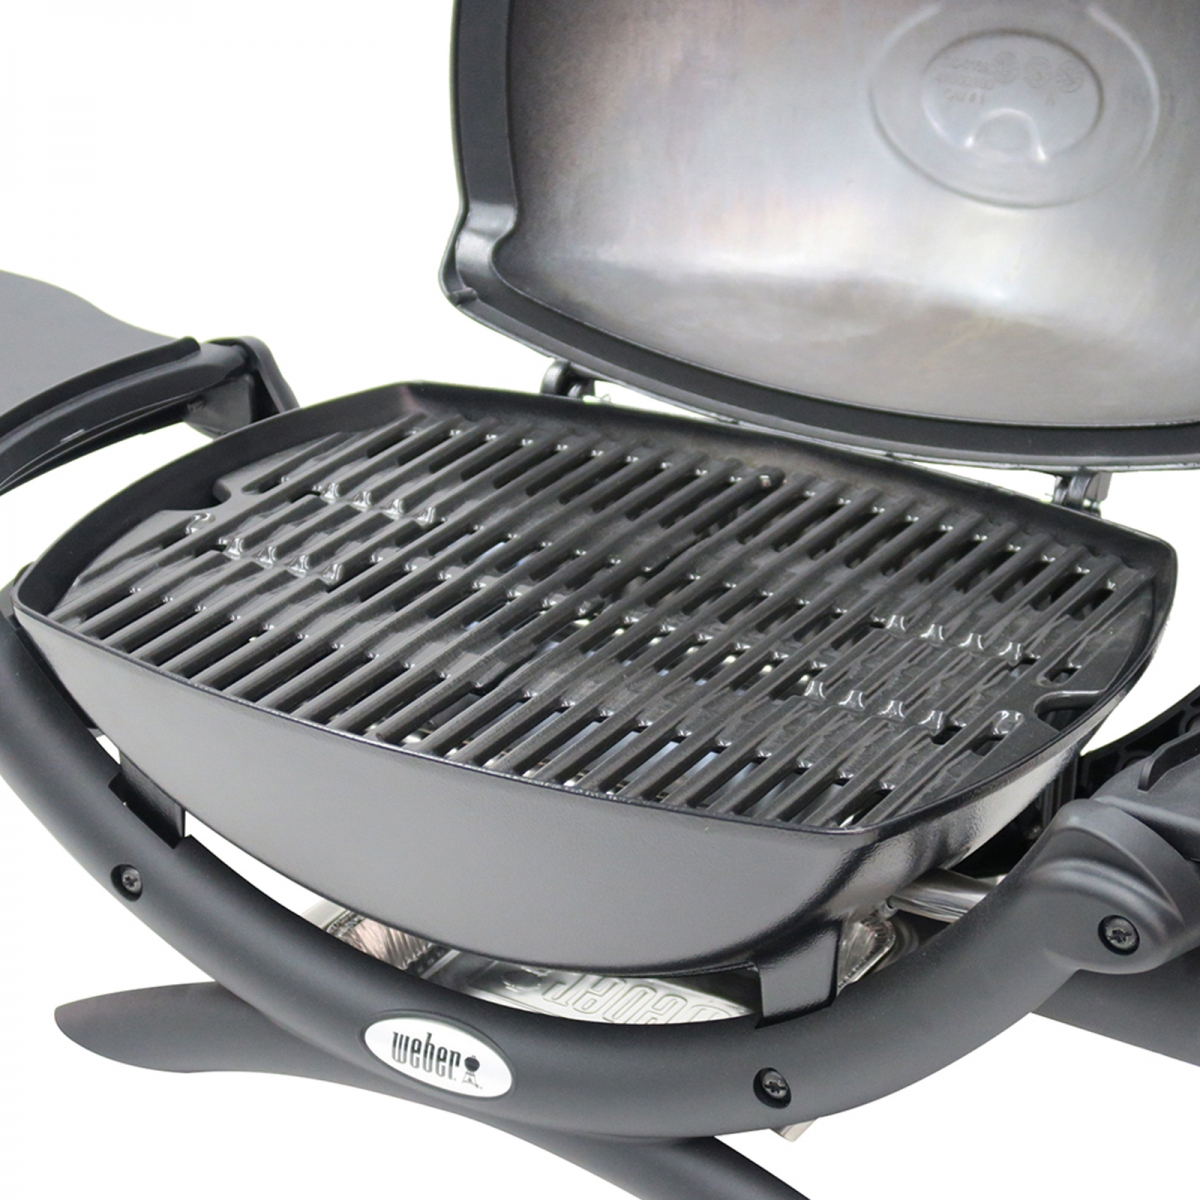 Weber q 1200 gas grill il mondo del barbecue for Outdoorkuche mit gasgrill